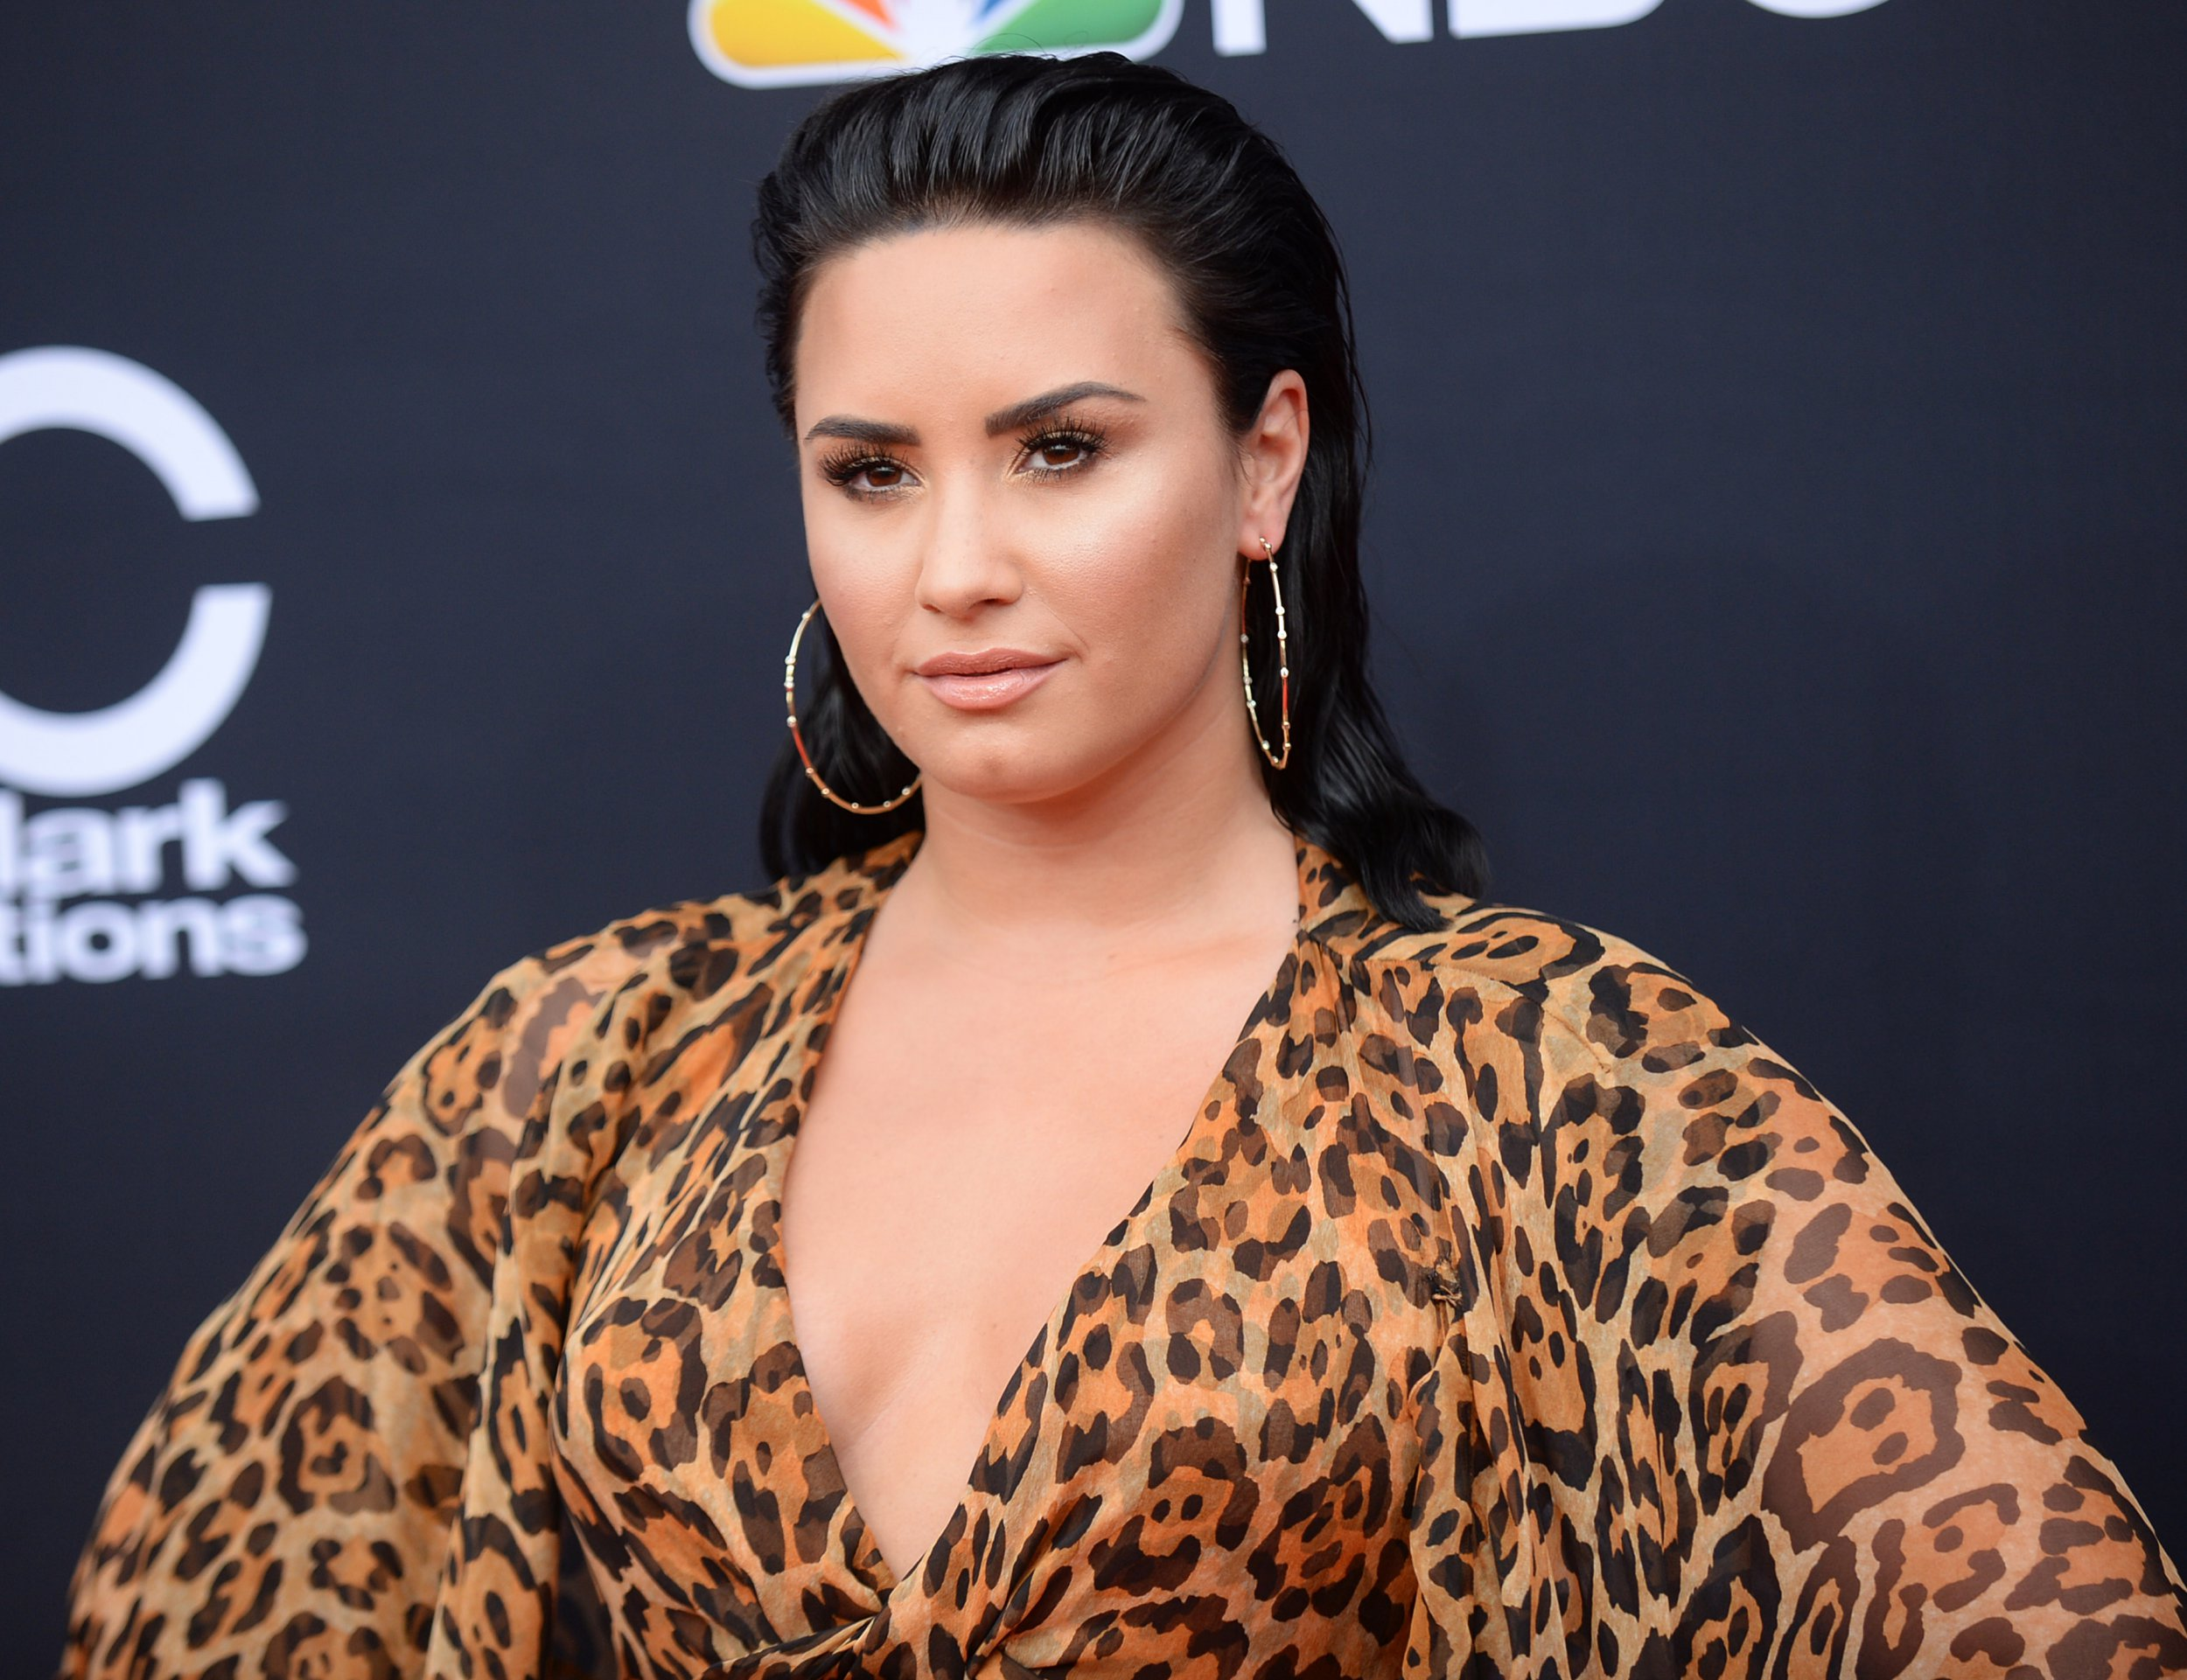 Mandatory Credit: Photo by Broadimage/REX/Shutterstock (9686580ea) Demi Lovato Billboard Music Awards, Arrivals, Las Vegas, USA - 20 May 2018 2018 Billboard Music Awards - Arrivals